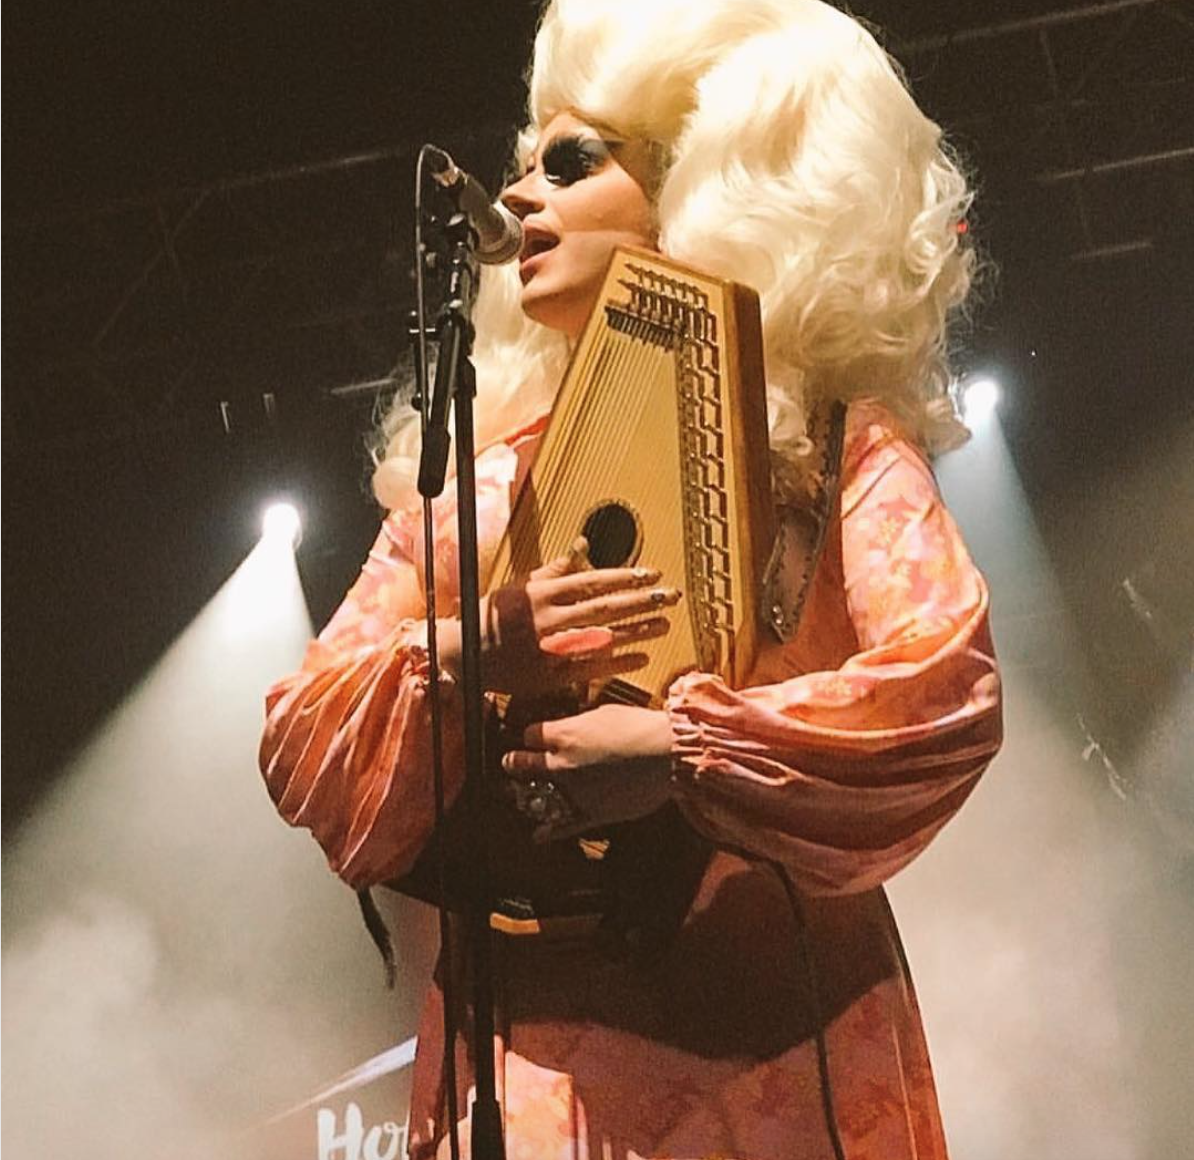 Chi è Trixie Mattel, la Drag Star metà Dolly Parton, metà Barbie